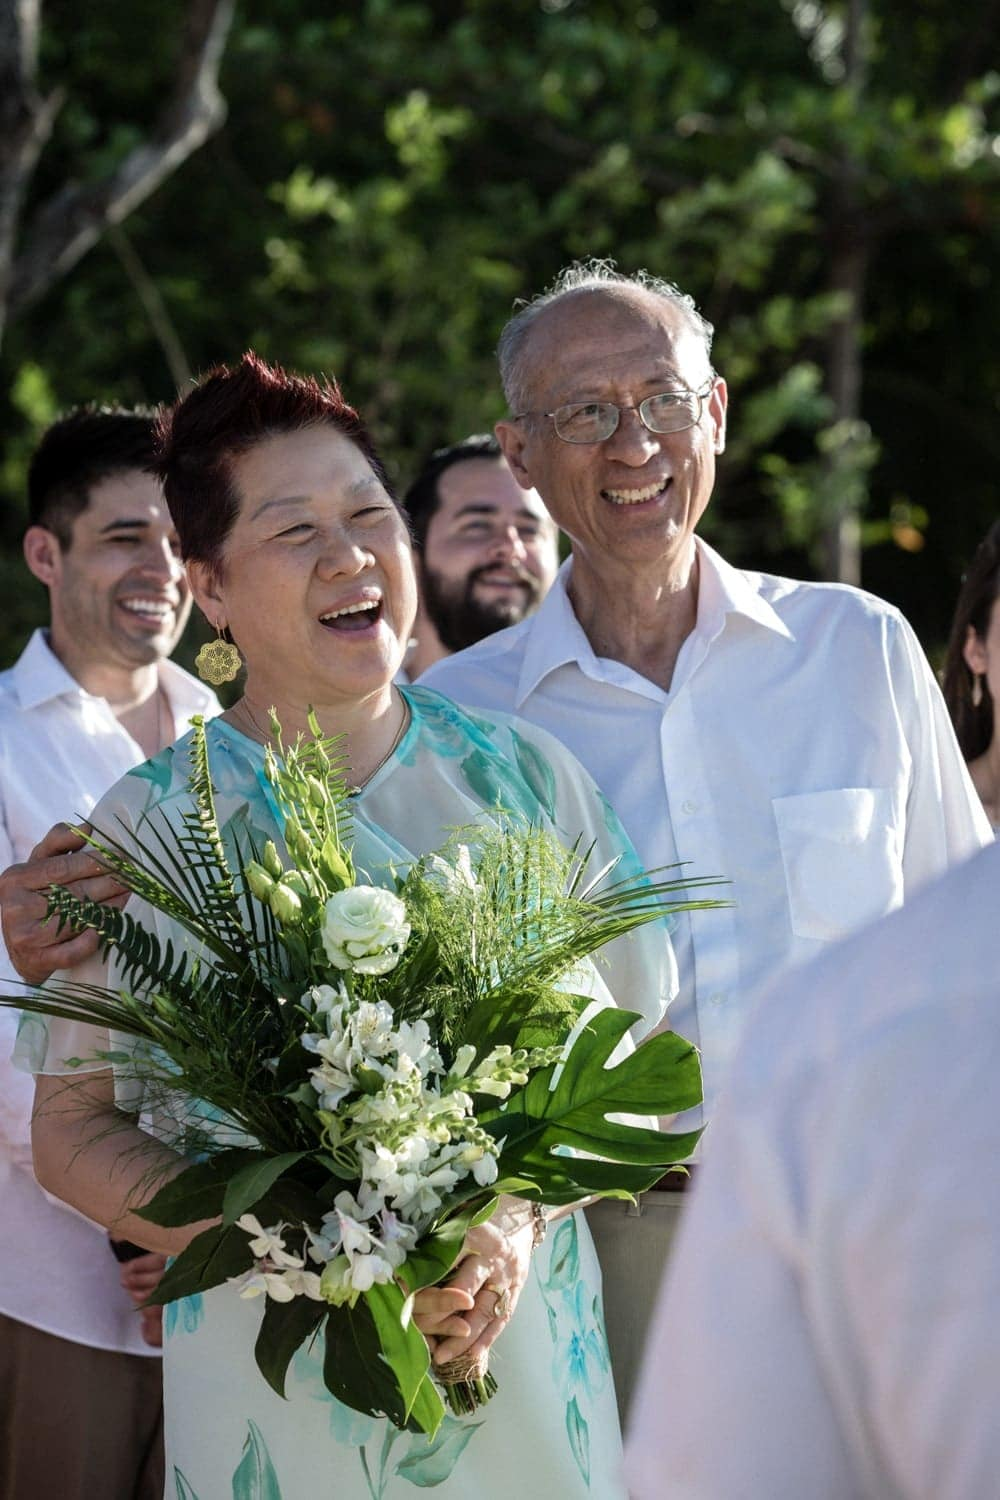 Parents of groom smile as son ties the knot in Costa Rica.